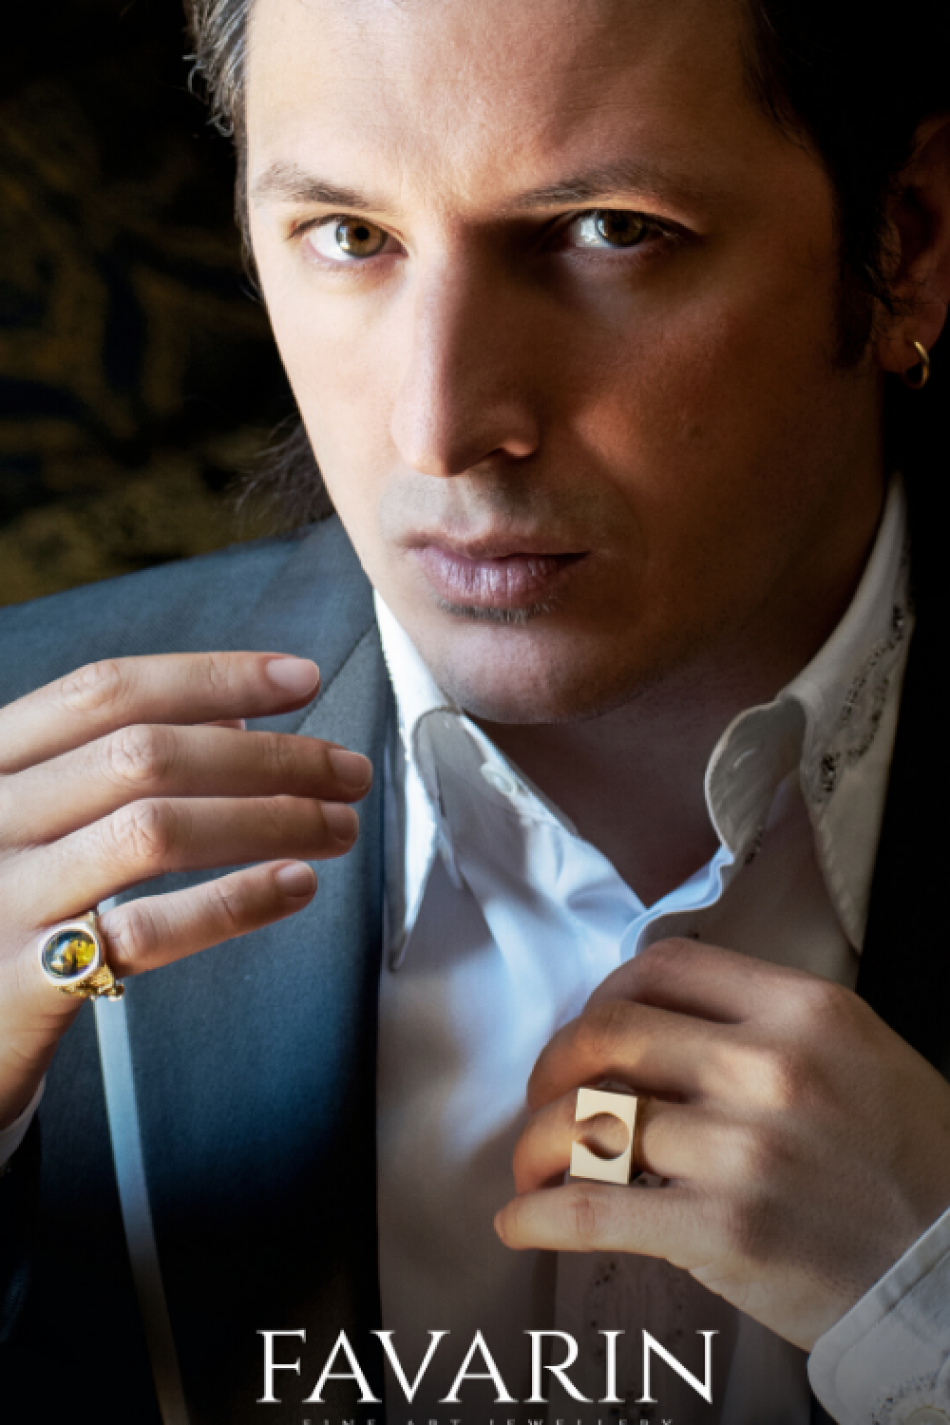 Simone Favarin and his transepochal jewelry concept